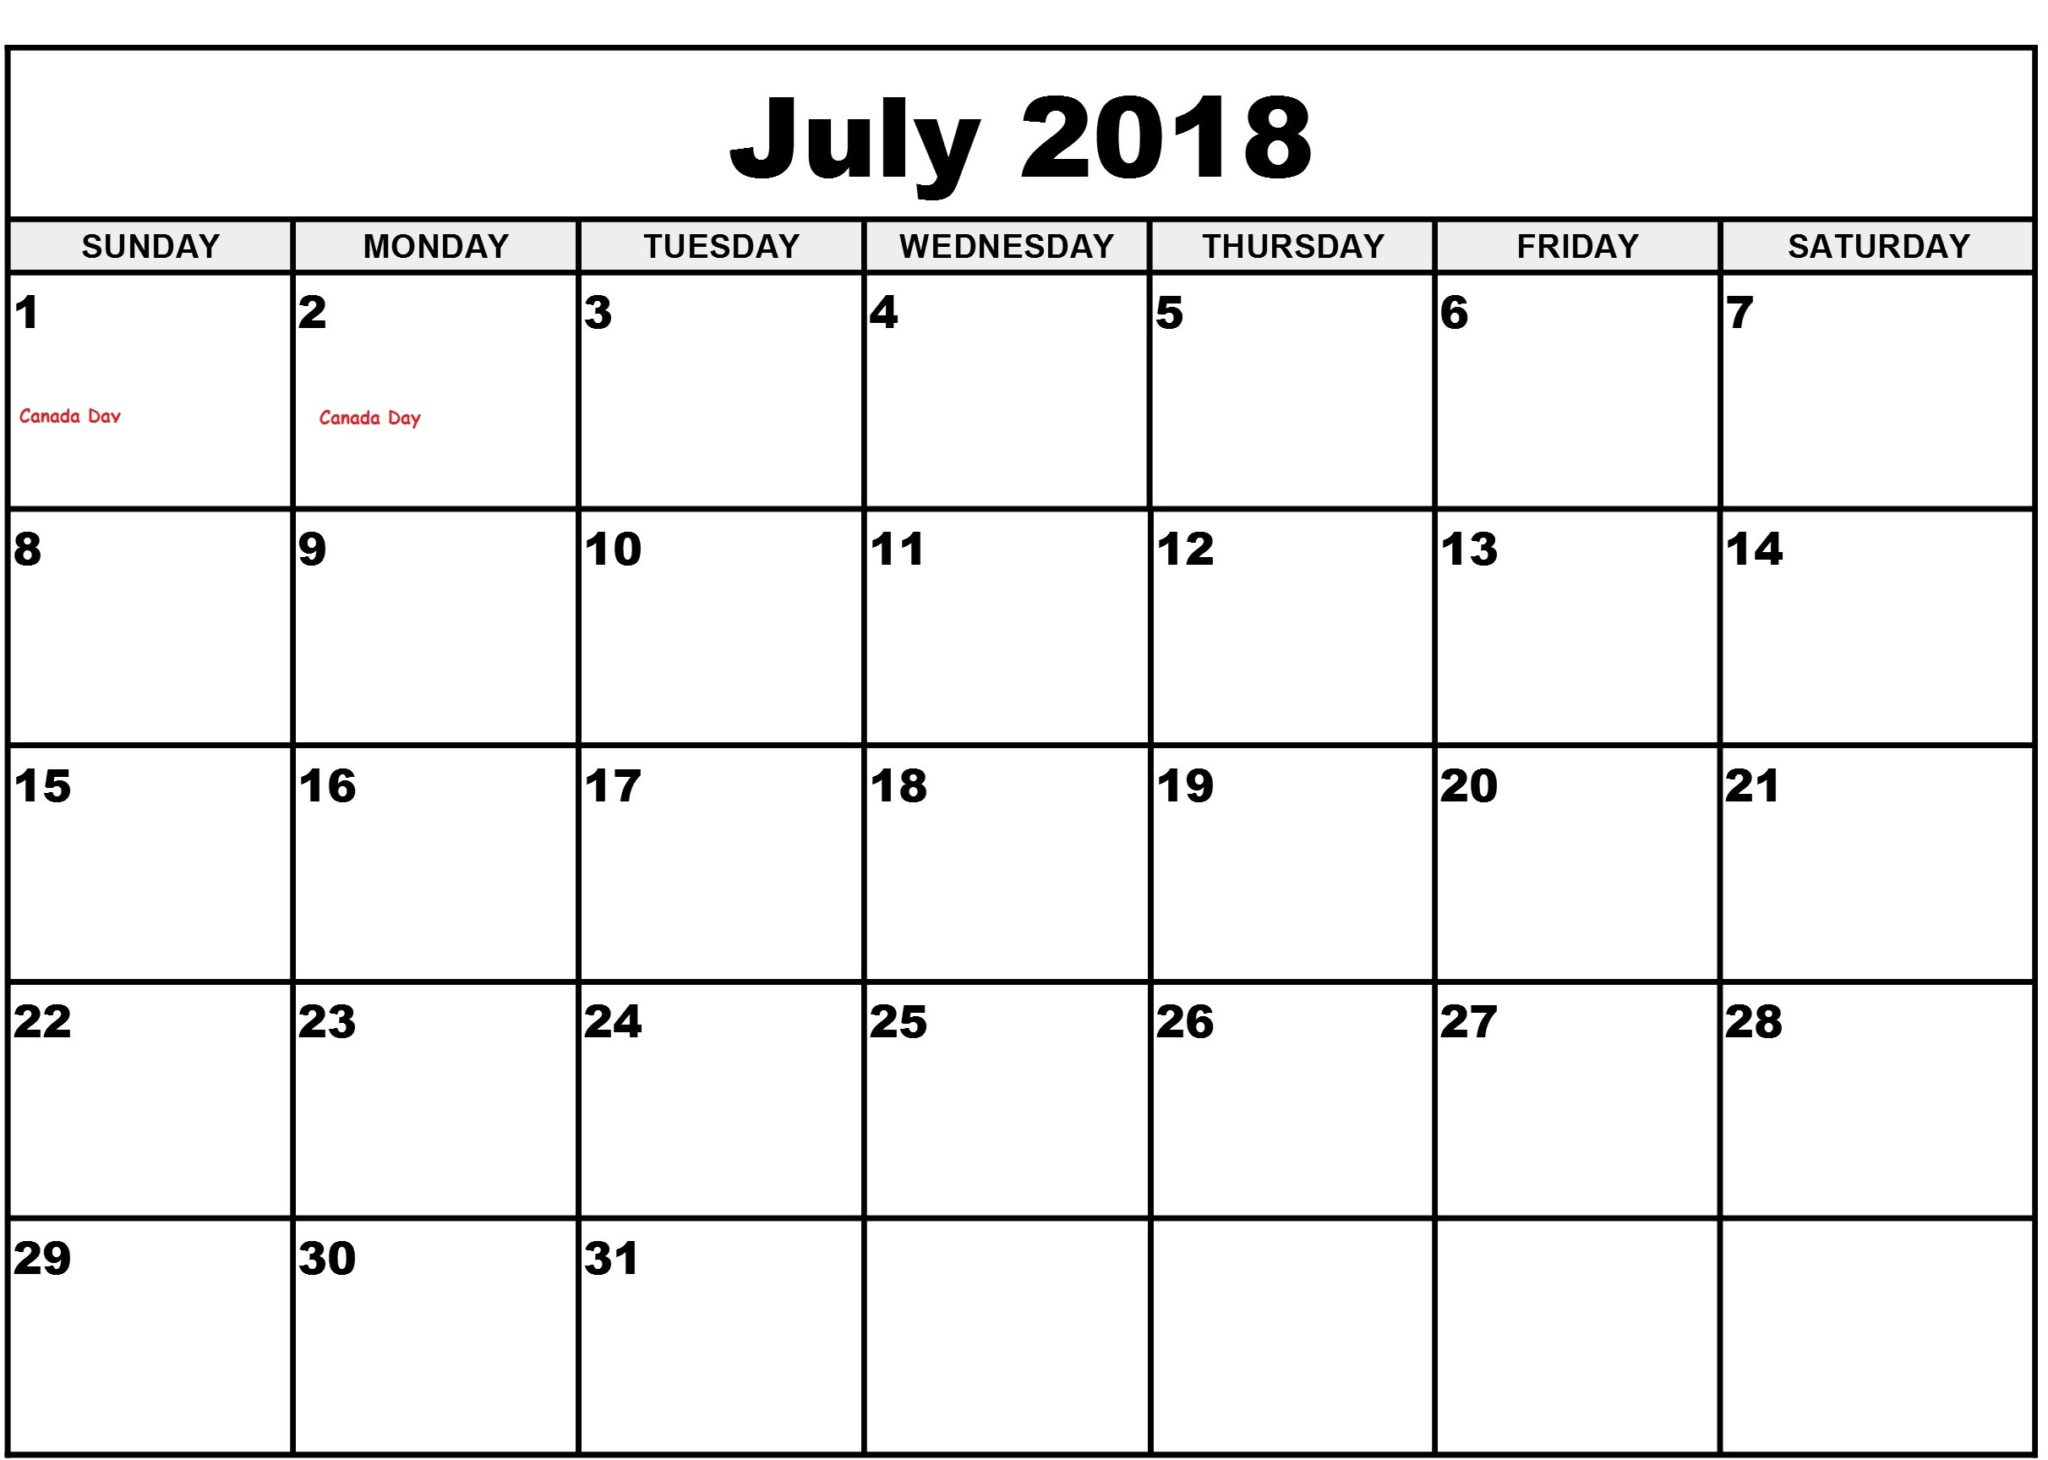 Calendar July 2018 Printable Pages